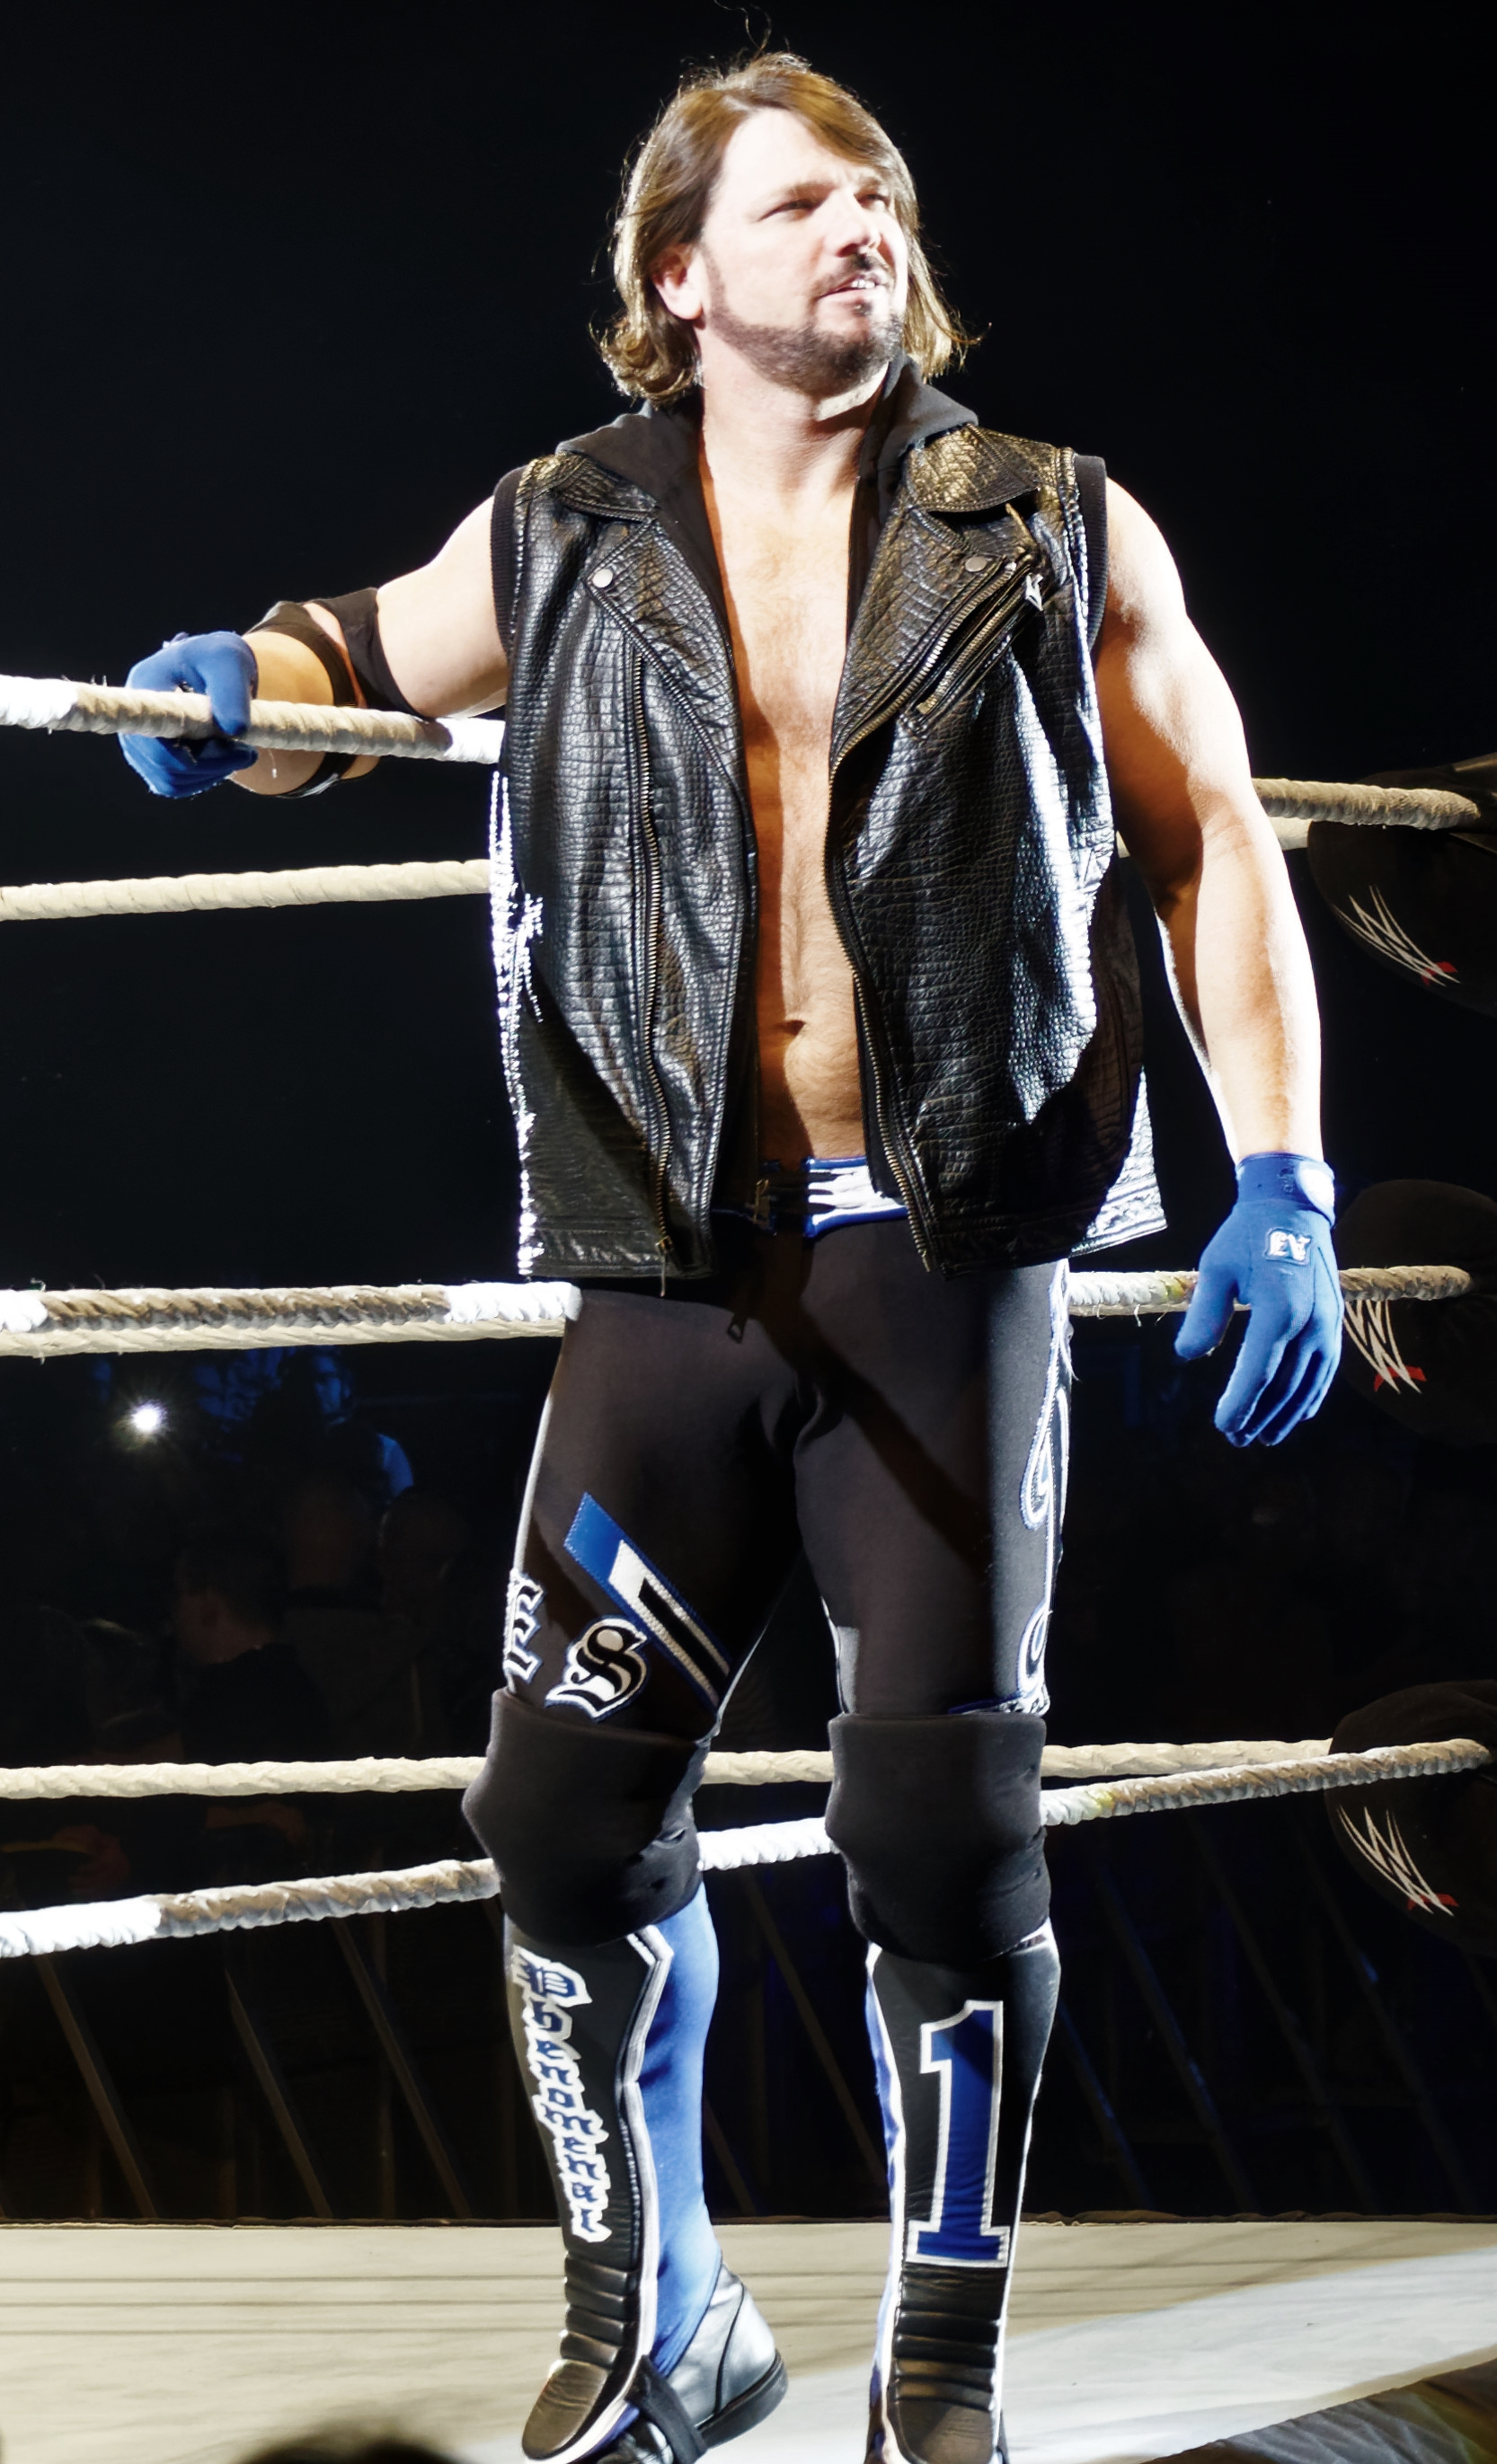 The 41-year old son of father (?) and mother(?) A.J. Styles in 2018 photo. A.J. Styles earned a  million dollar salary - leaving the net worth at 0.5 million in 2018